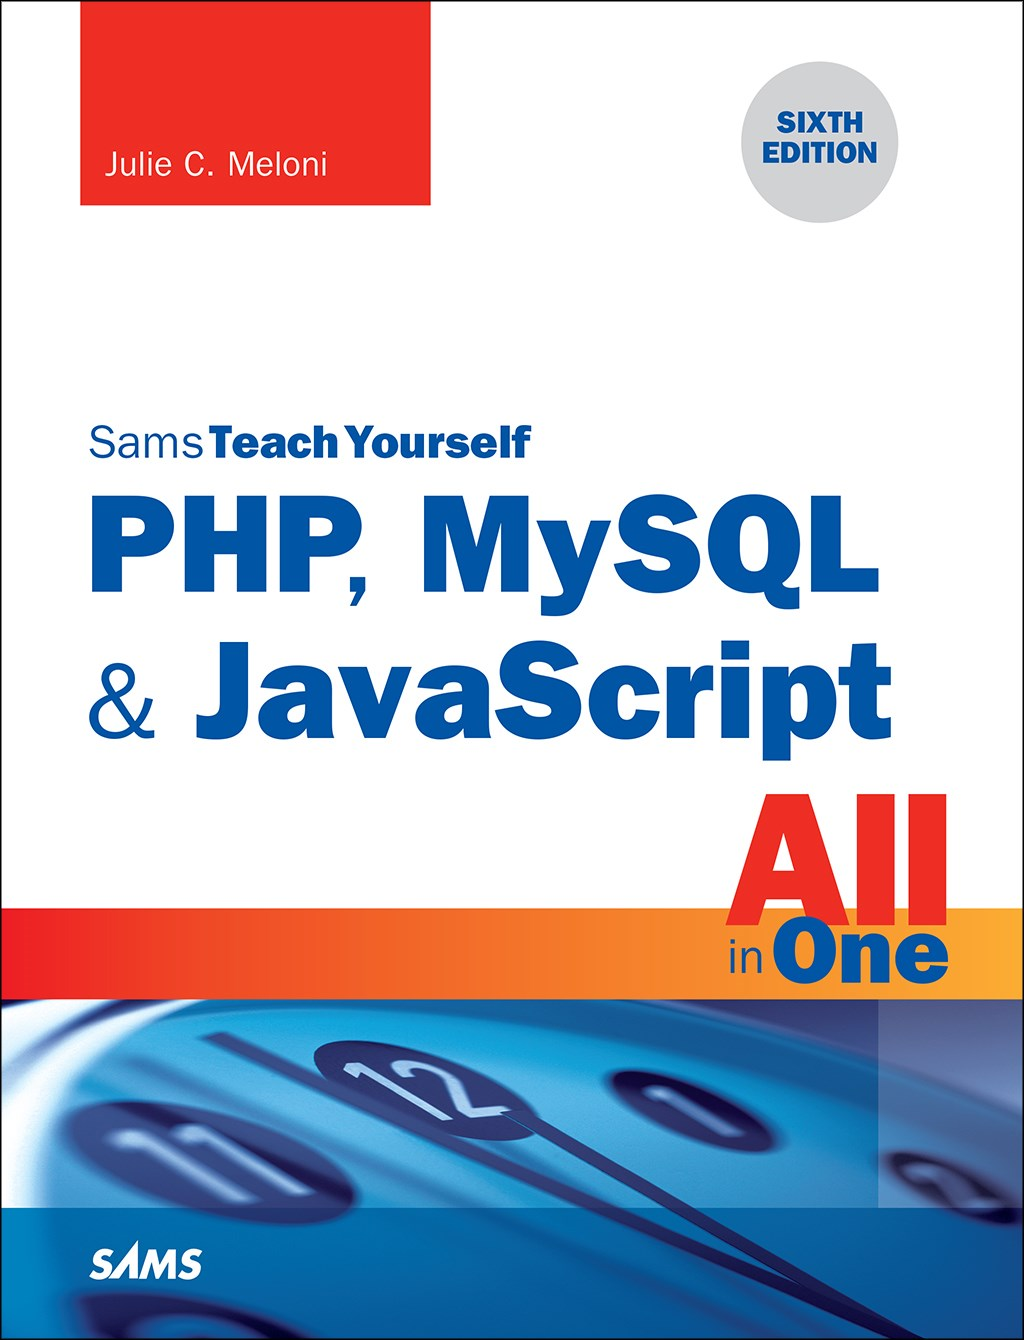 PHP, MySQL & JavaScript All in One, Sams Teach Yourself, 6th Edition